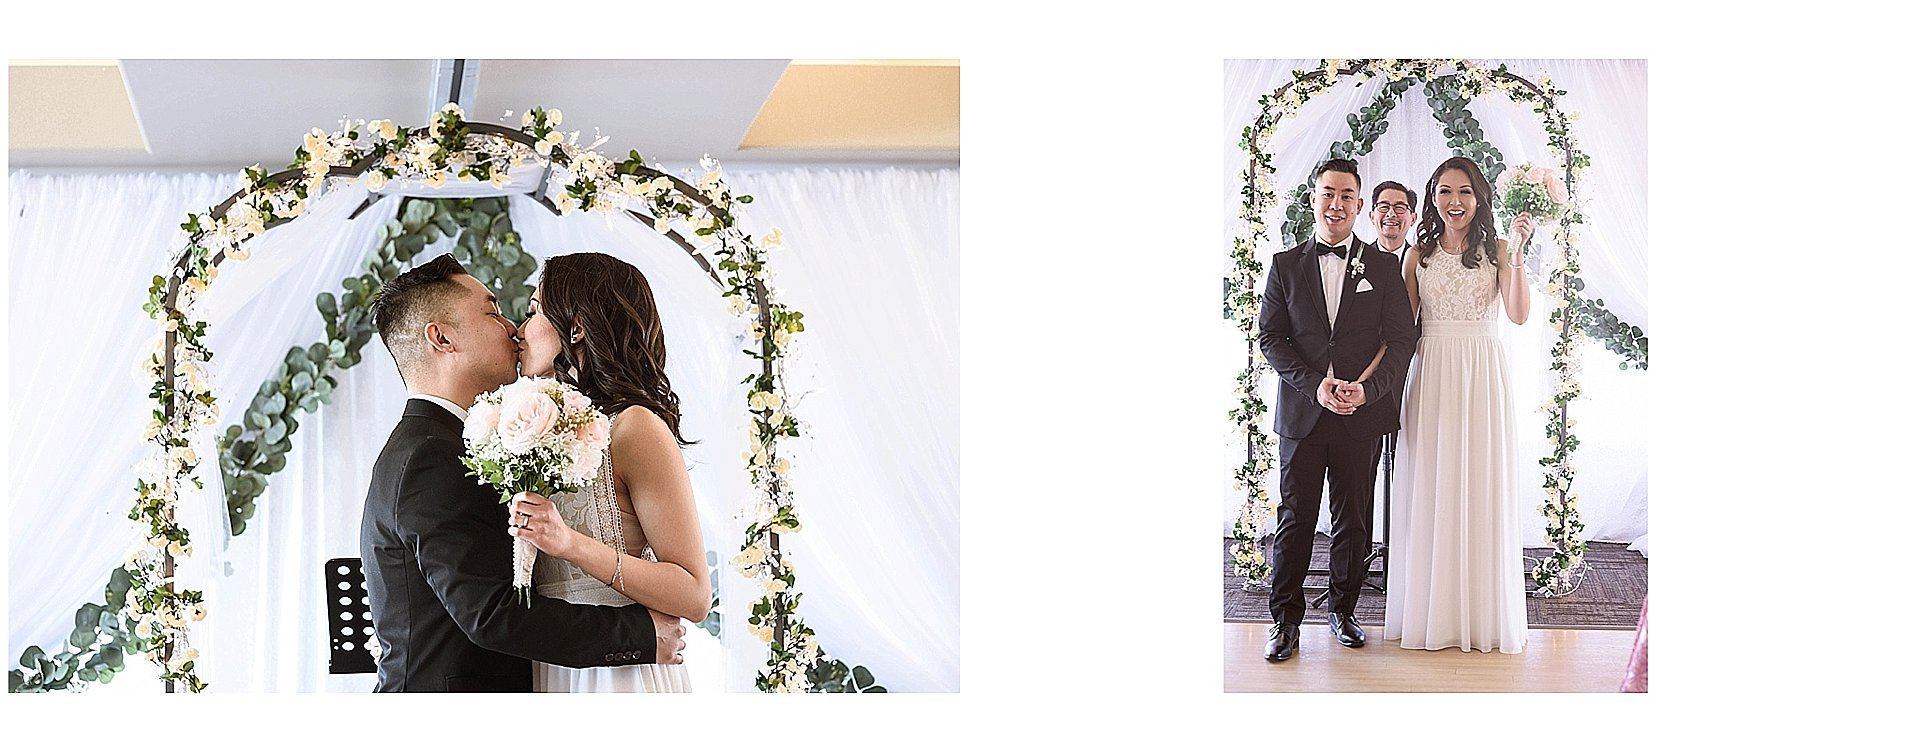 Sheena Mark 14_SM-Wedding-Album-coloniale-golf-club-beaumont